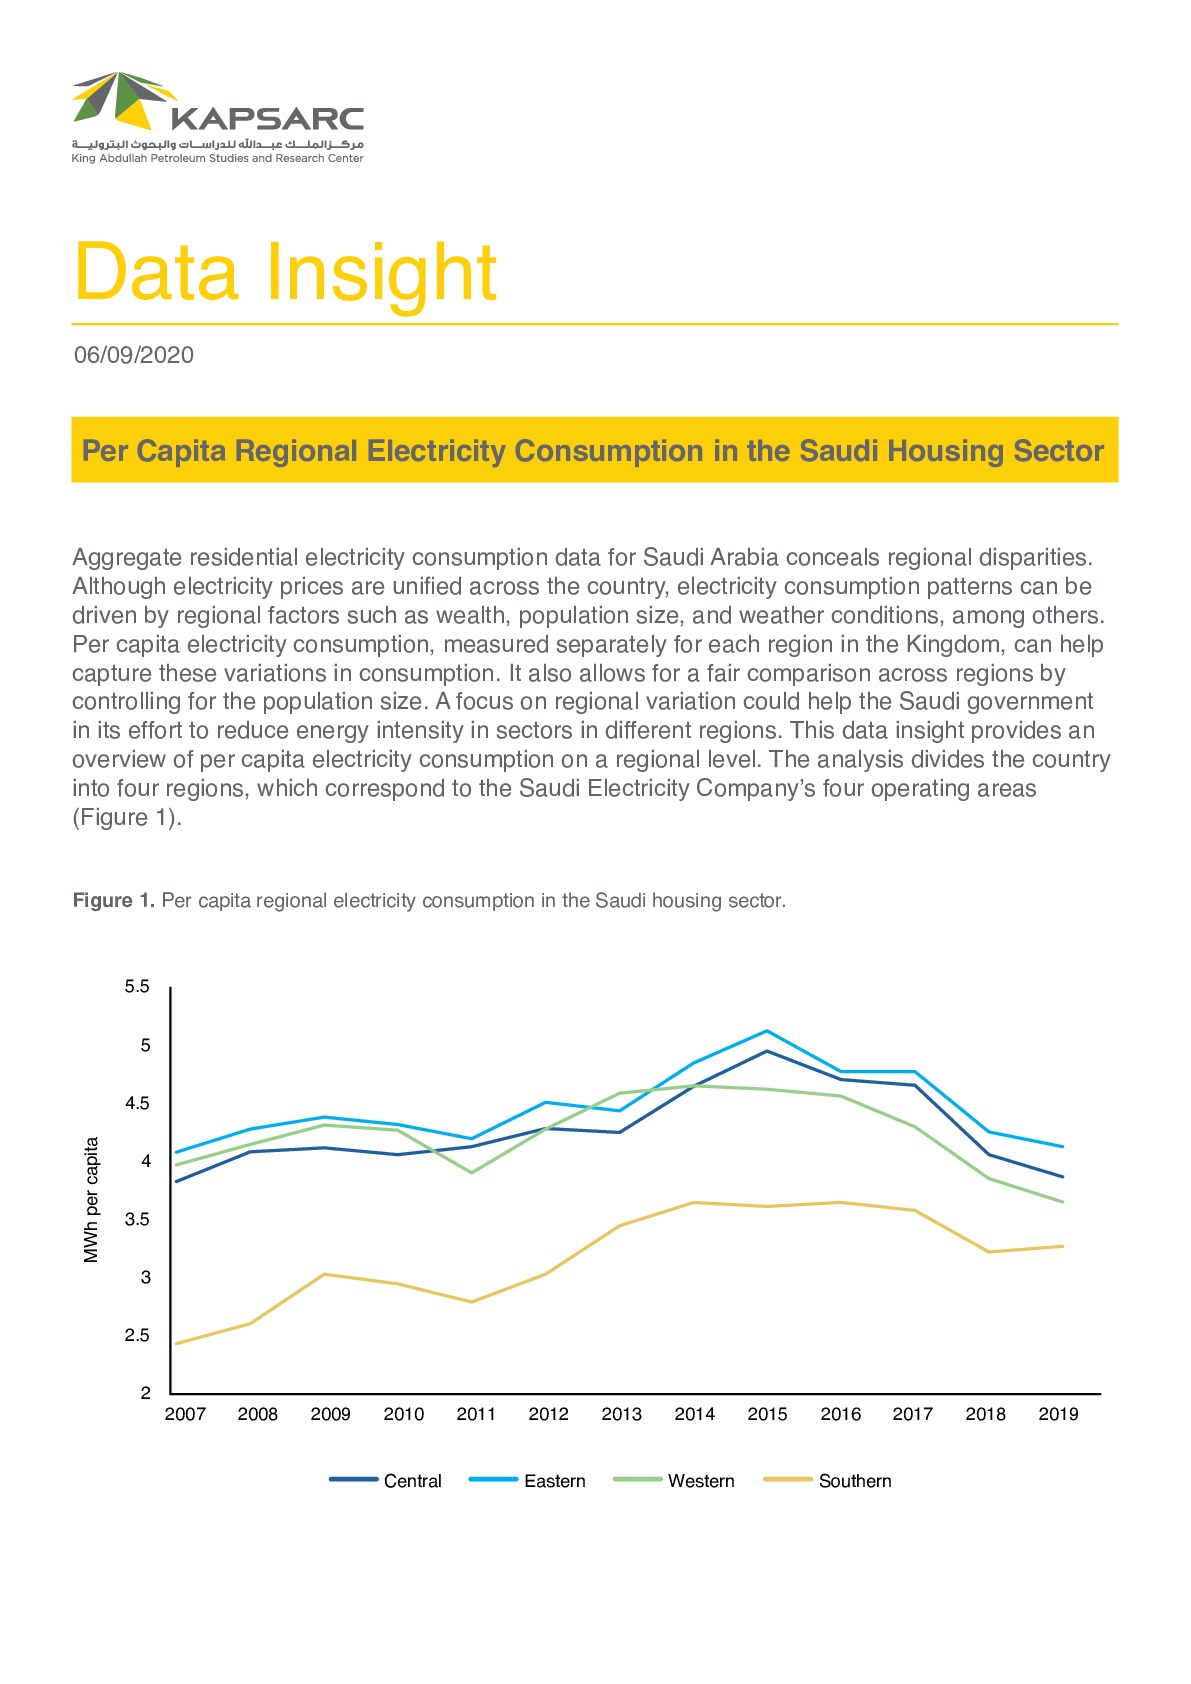 Per Capita Regional Electricity Consumption in the Saudi Housing Sector